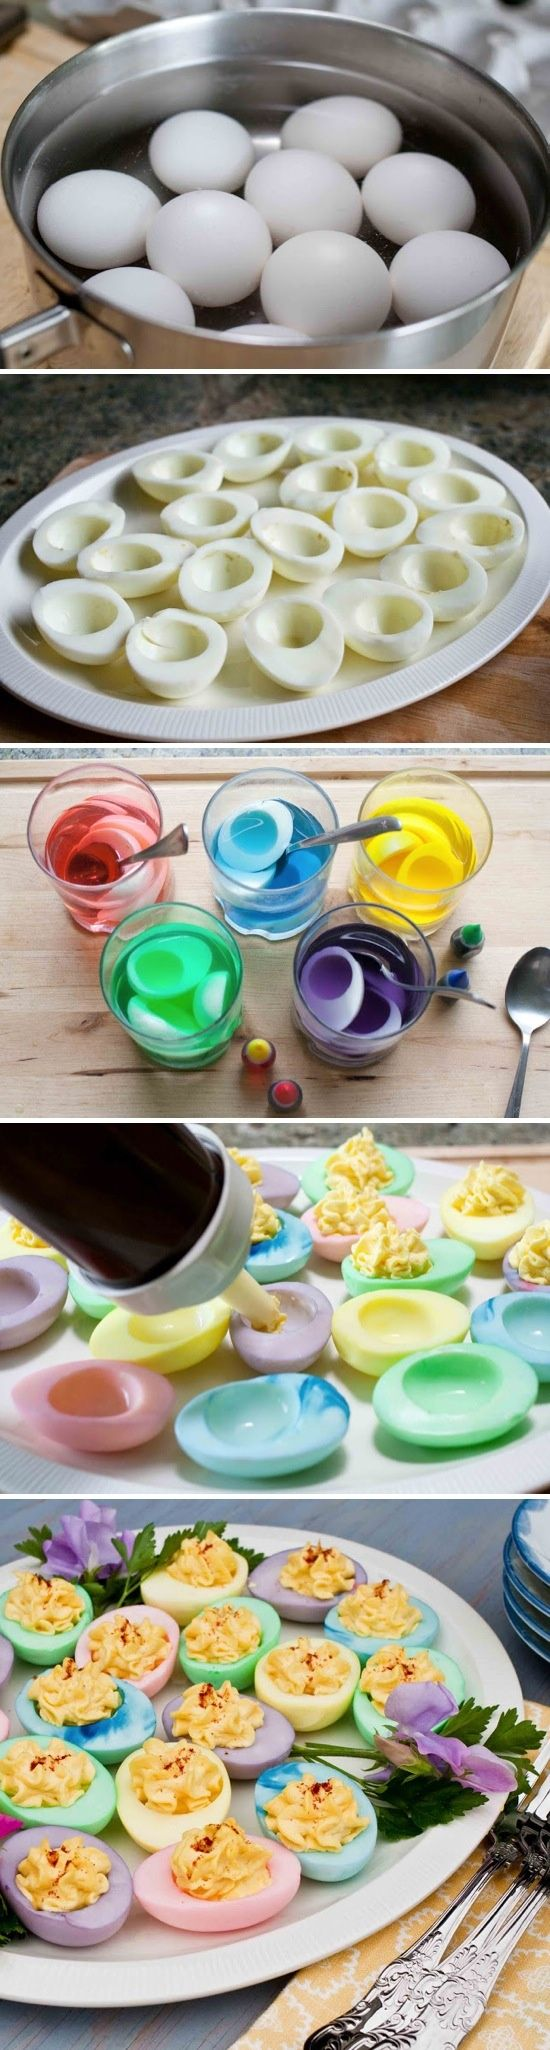 Colorful pealedl easter eggs food coloring vinegar for dye boil colorful pealedl easter eggs food coloring vinegar for dye boil cool forumfinder